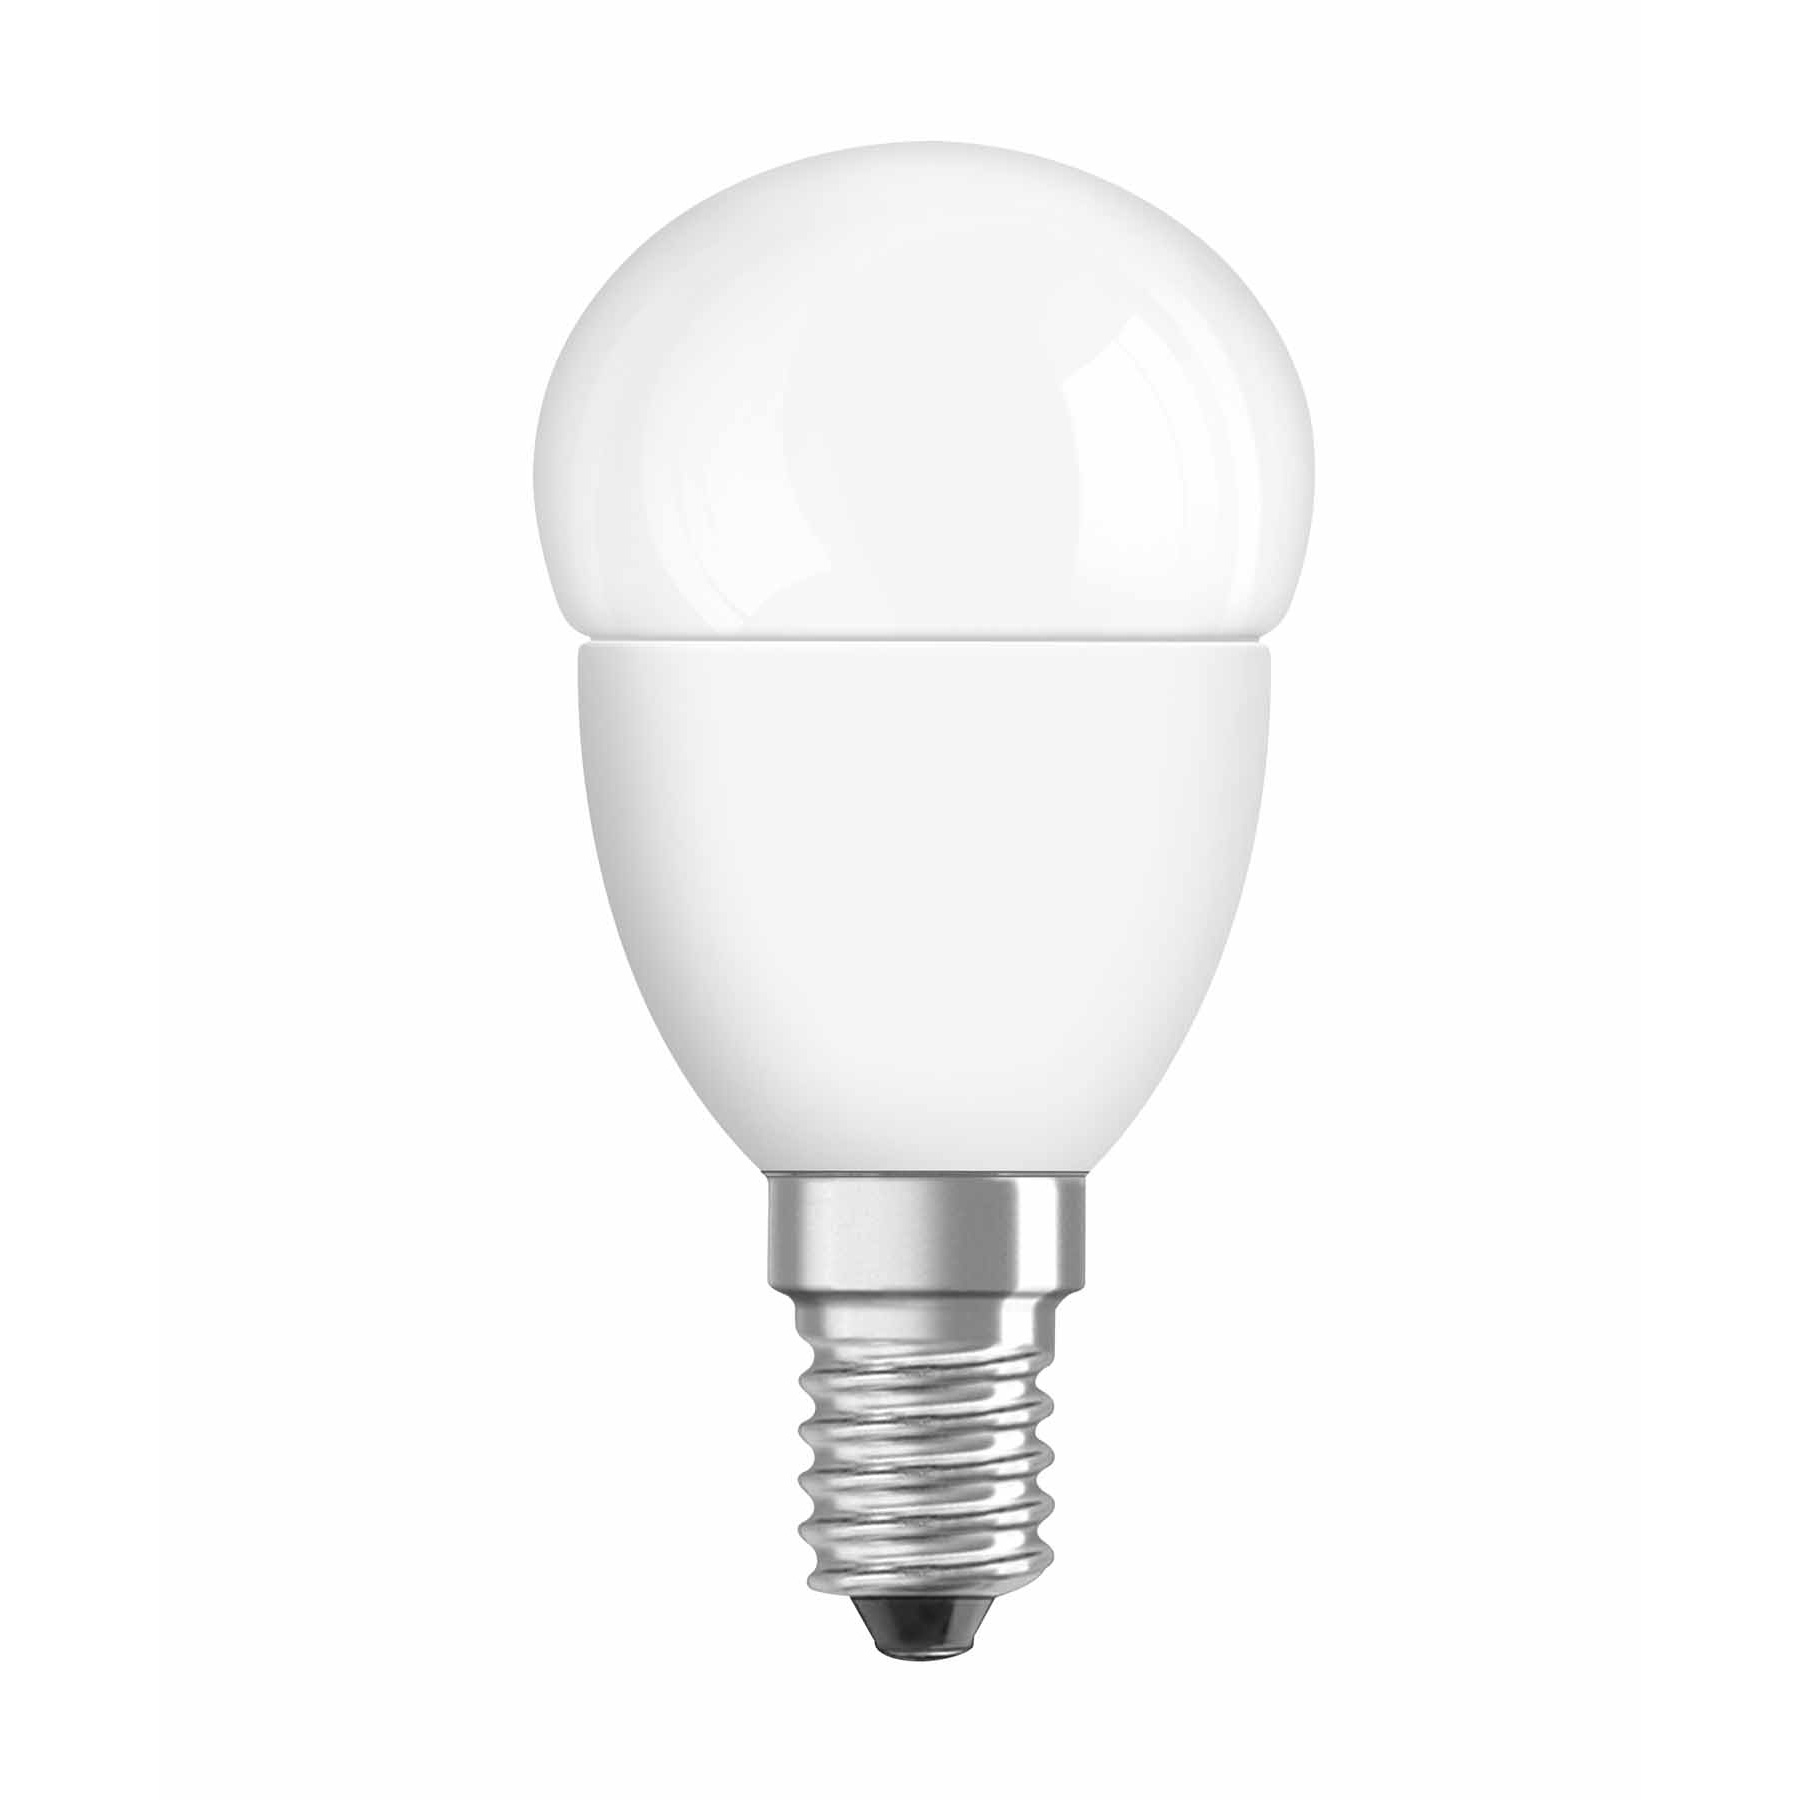 osram led star classic p 40 e14 4052899911932 reuter. Black Bedroom Furniture Sets. Home Design Ideas